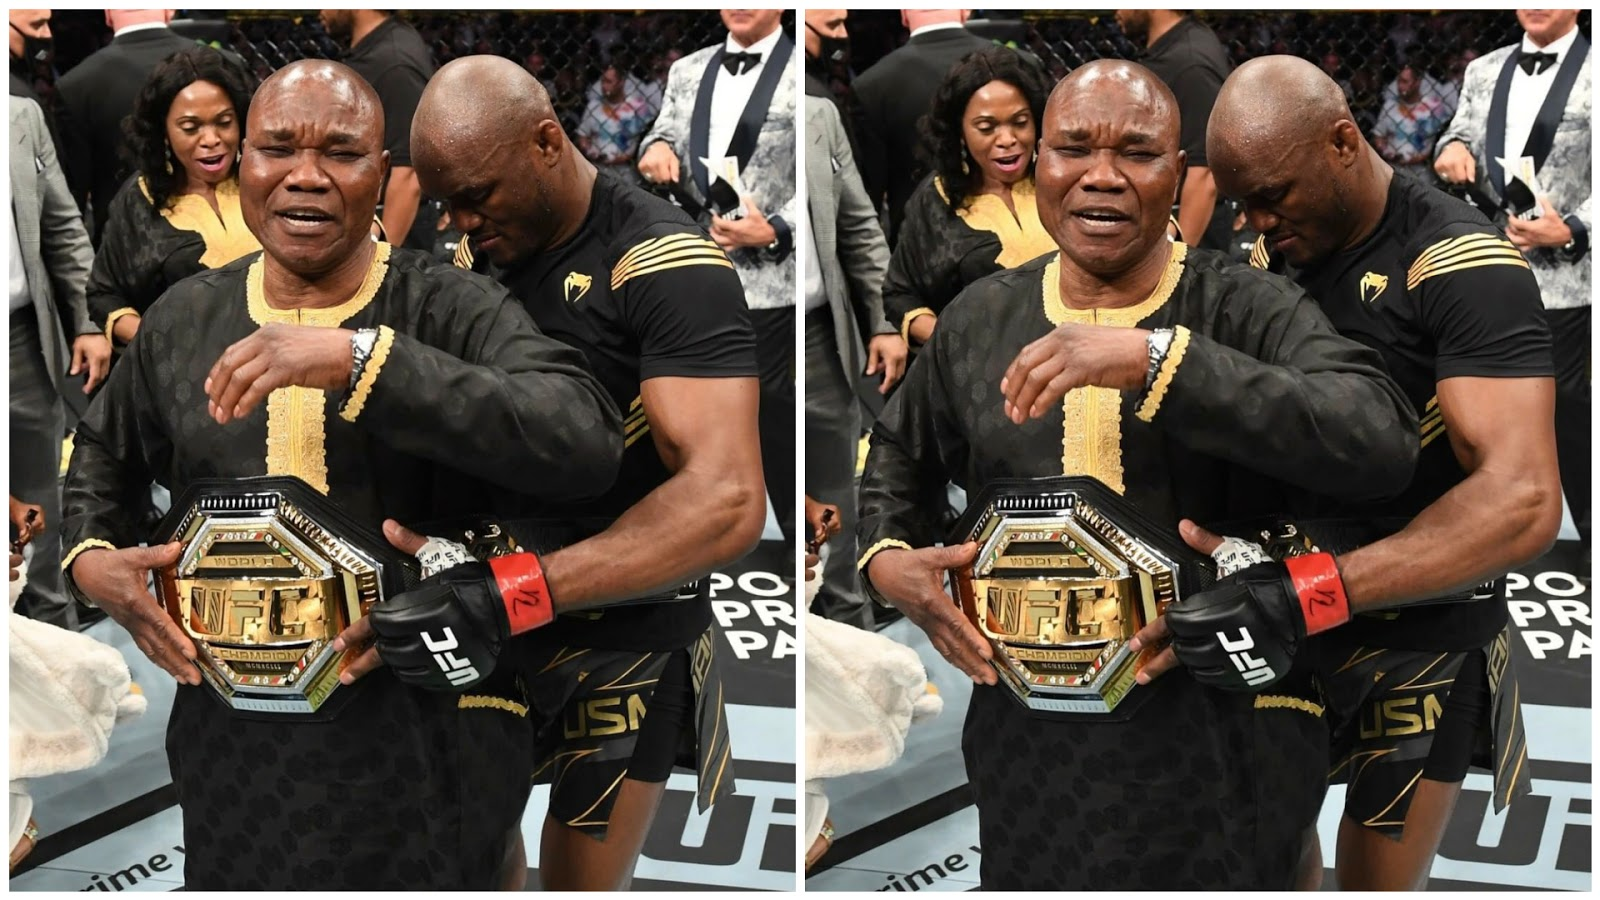 UFC 261: The emotional moment Kamaru paid tribute to his dad who's watching him live for the first time after 10yrs in jail